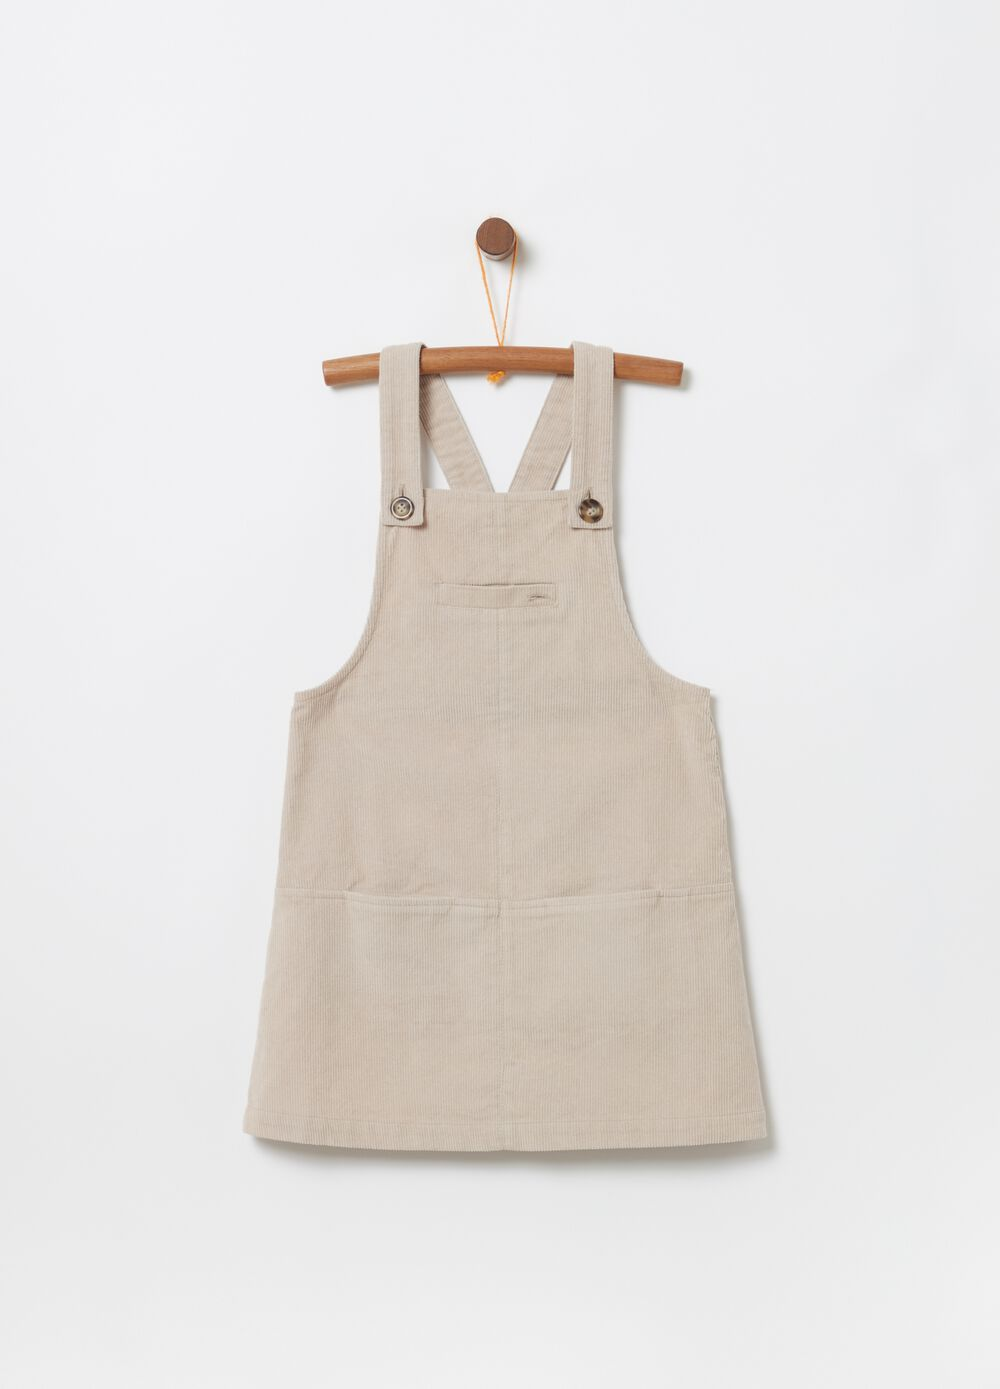 100% cotton corduroy pinafore dress